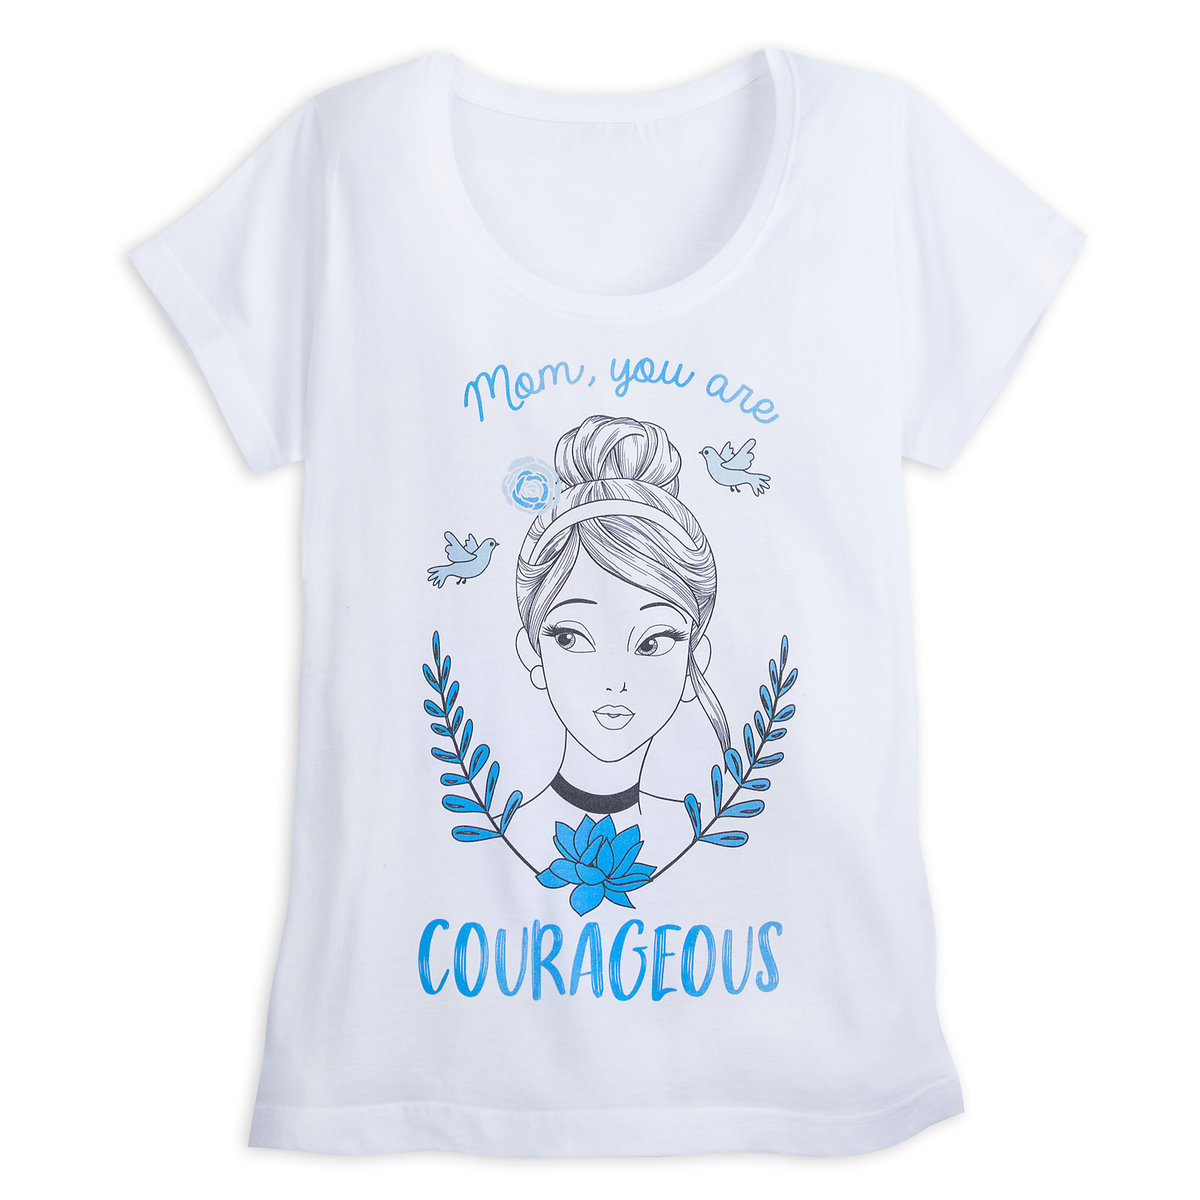 ddcb9542df3f8 Product Image of Cinderella T-Shirt for Women # 1